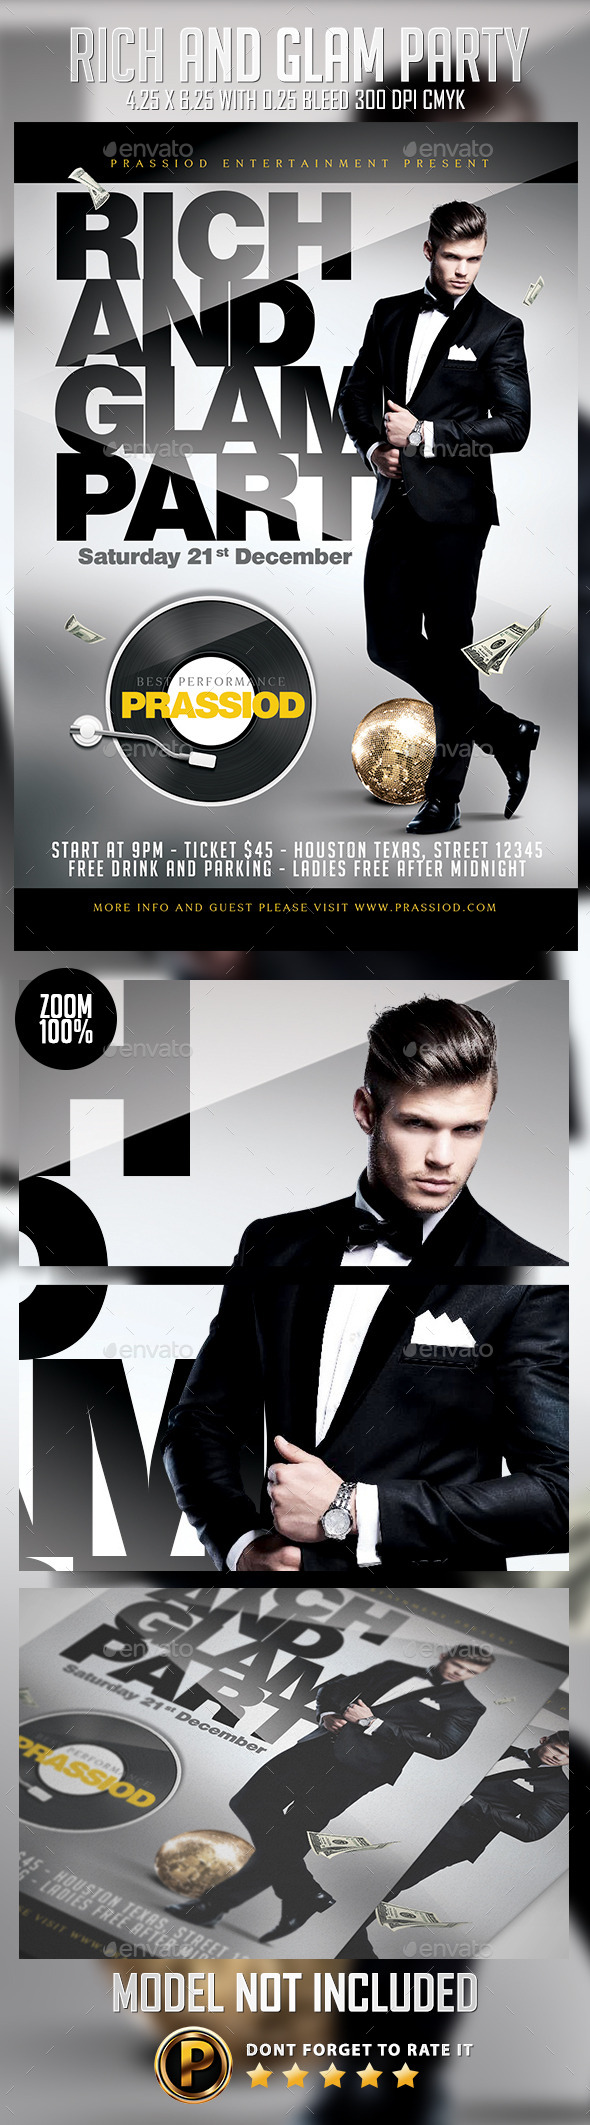 Rich And Glam Party Flyer Template - Clubs & Parties Events